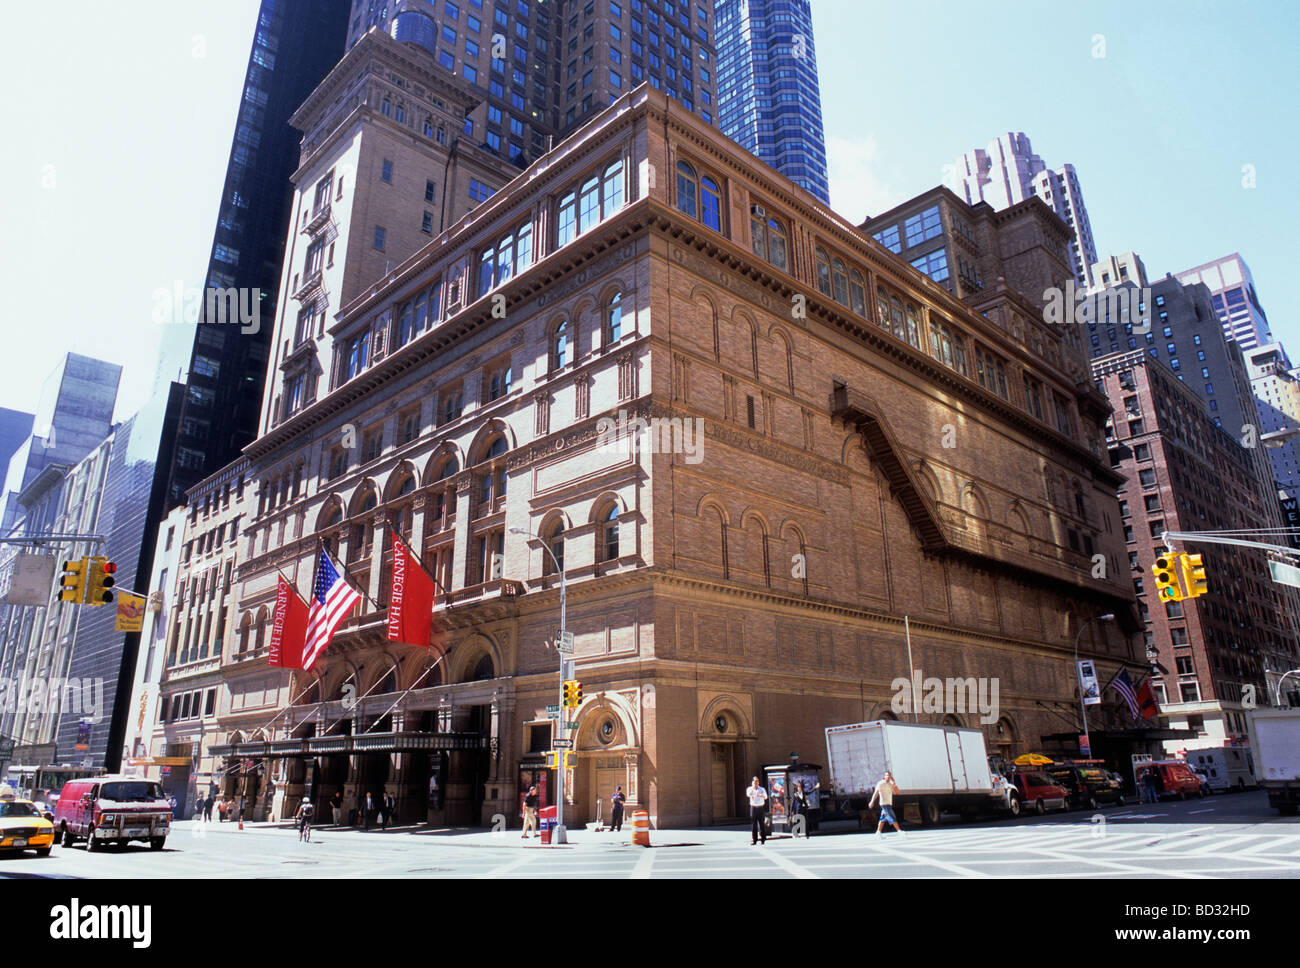 New York City Carnegie Hall Building Exterior and The Russian Tea ...